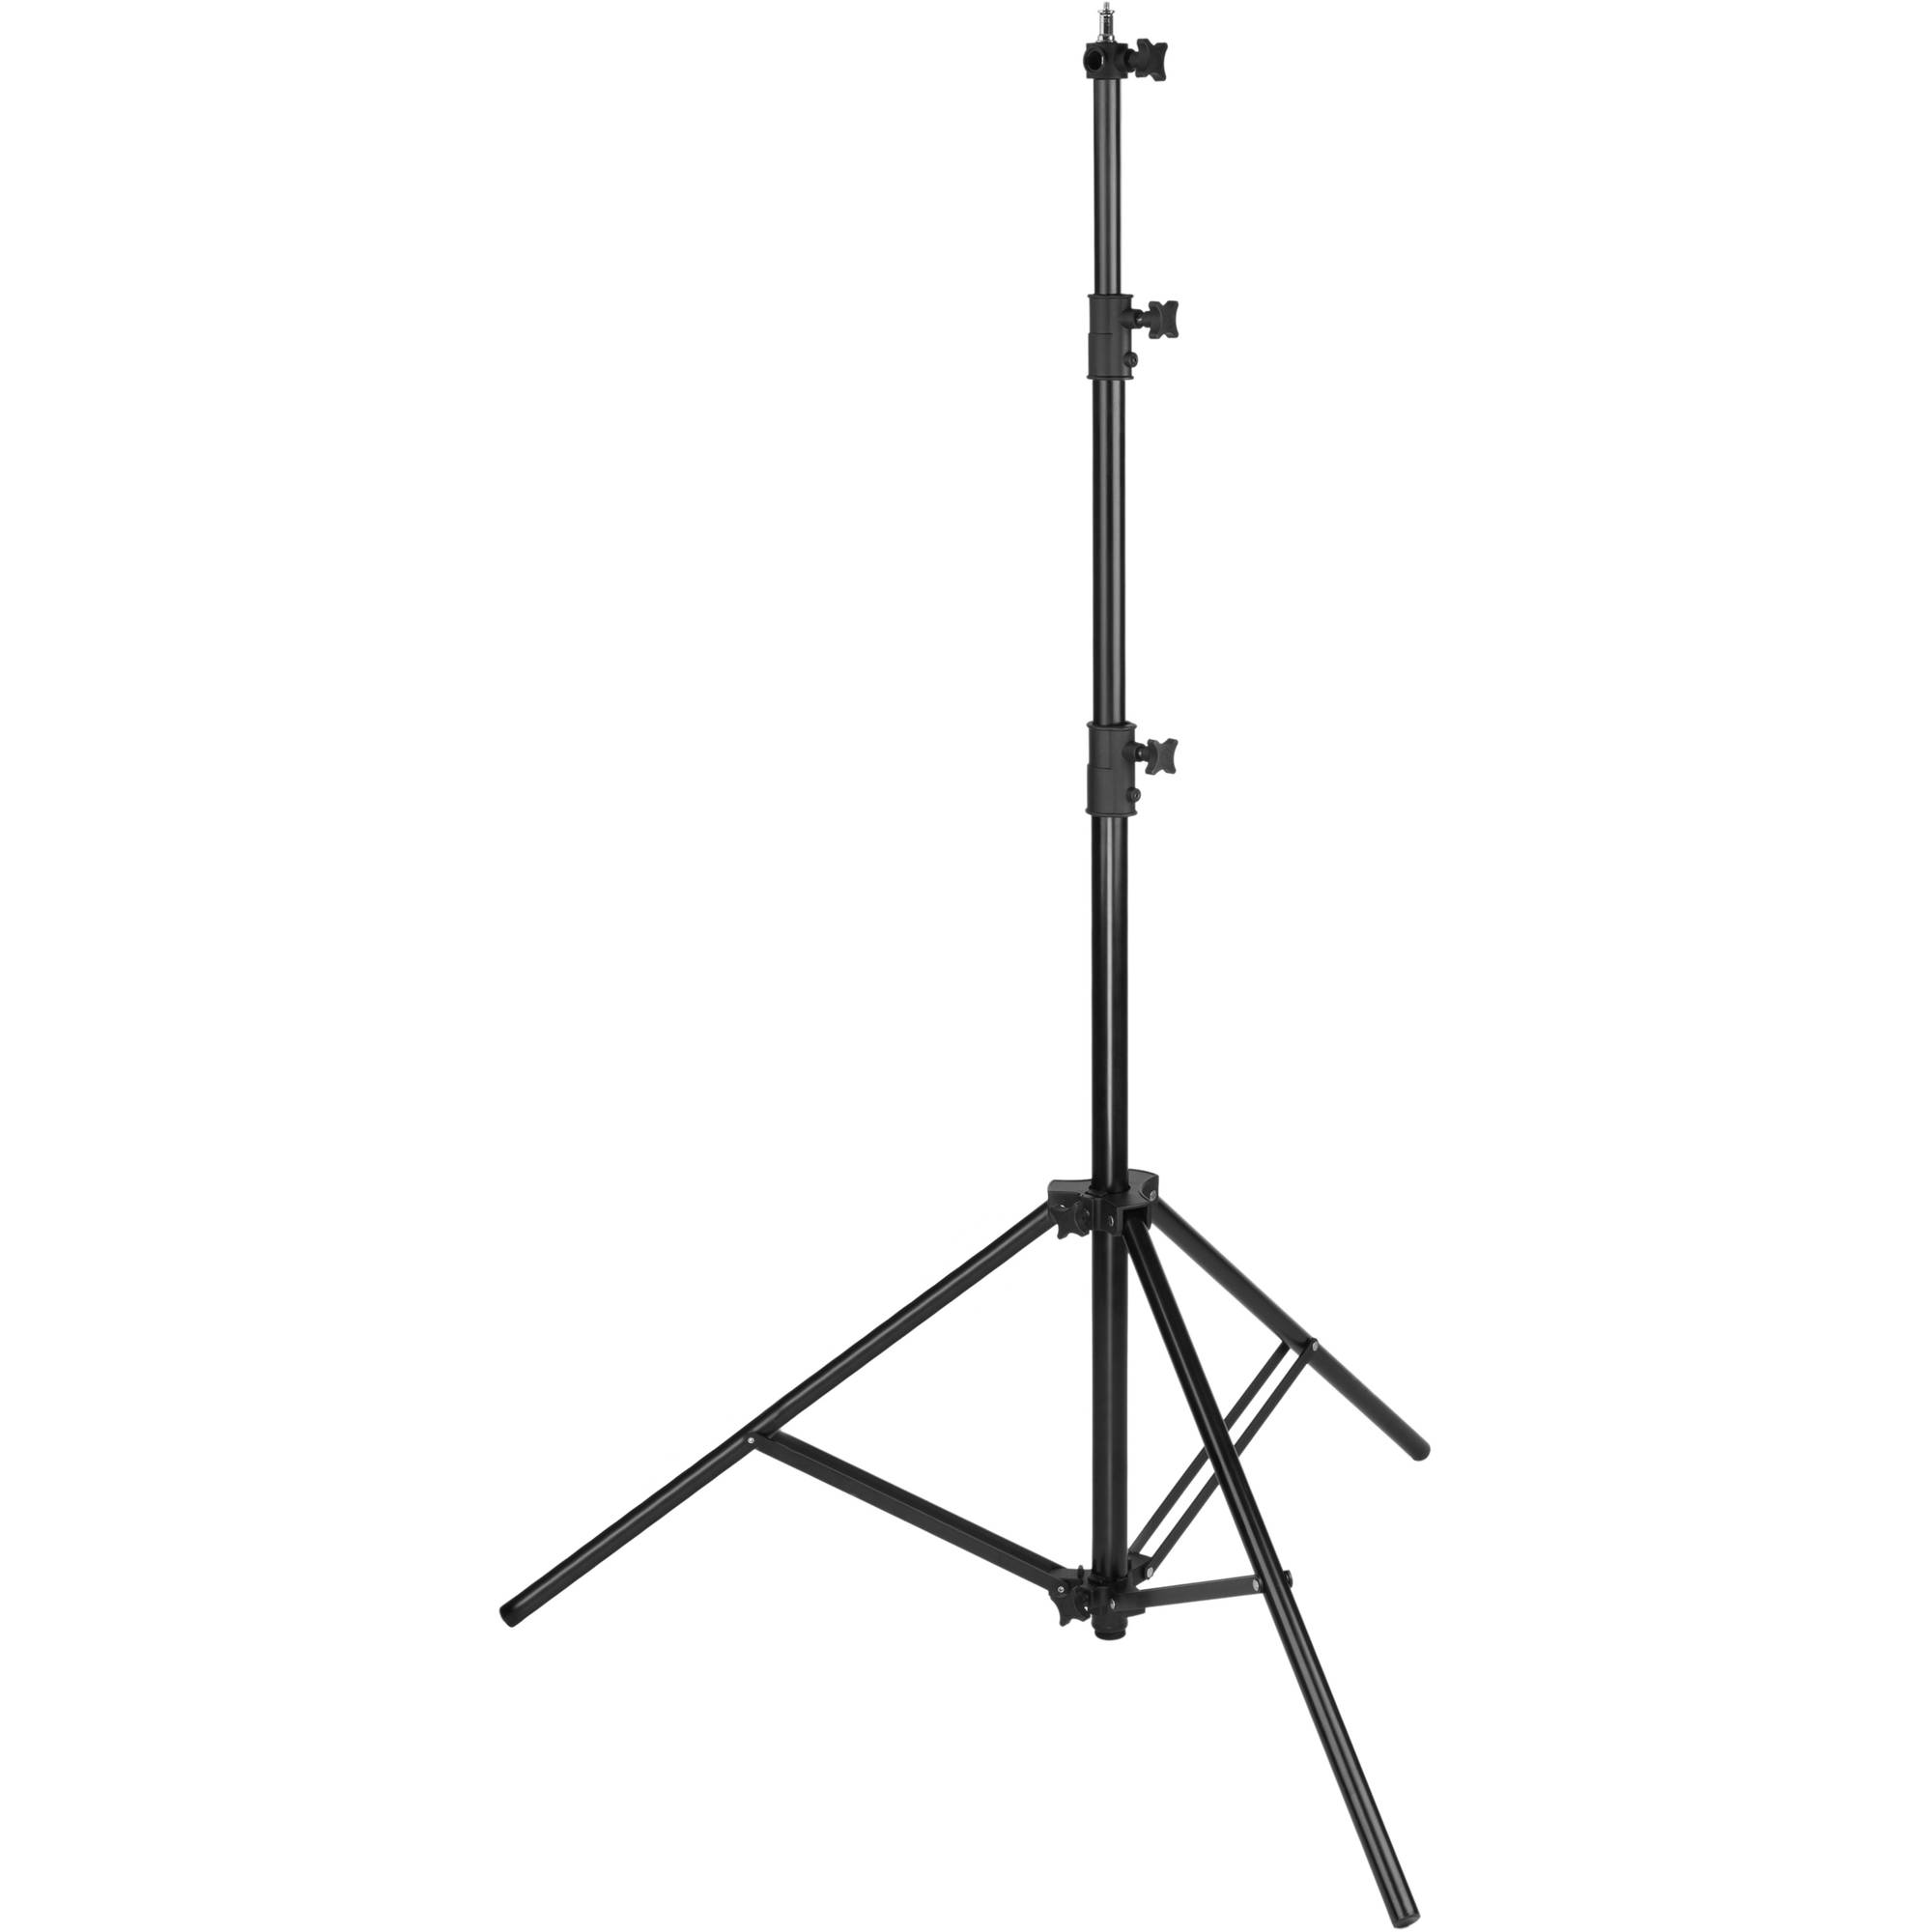 IMPACT AIR CUSHIONED (Pneumatic) HEAVY DUTY LIGHT STAND 2.9 M (LS-96HAB)